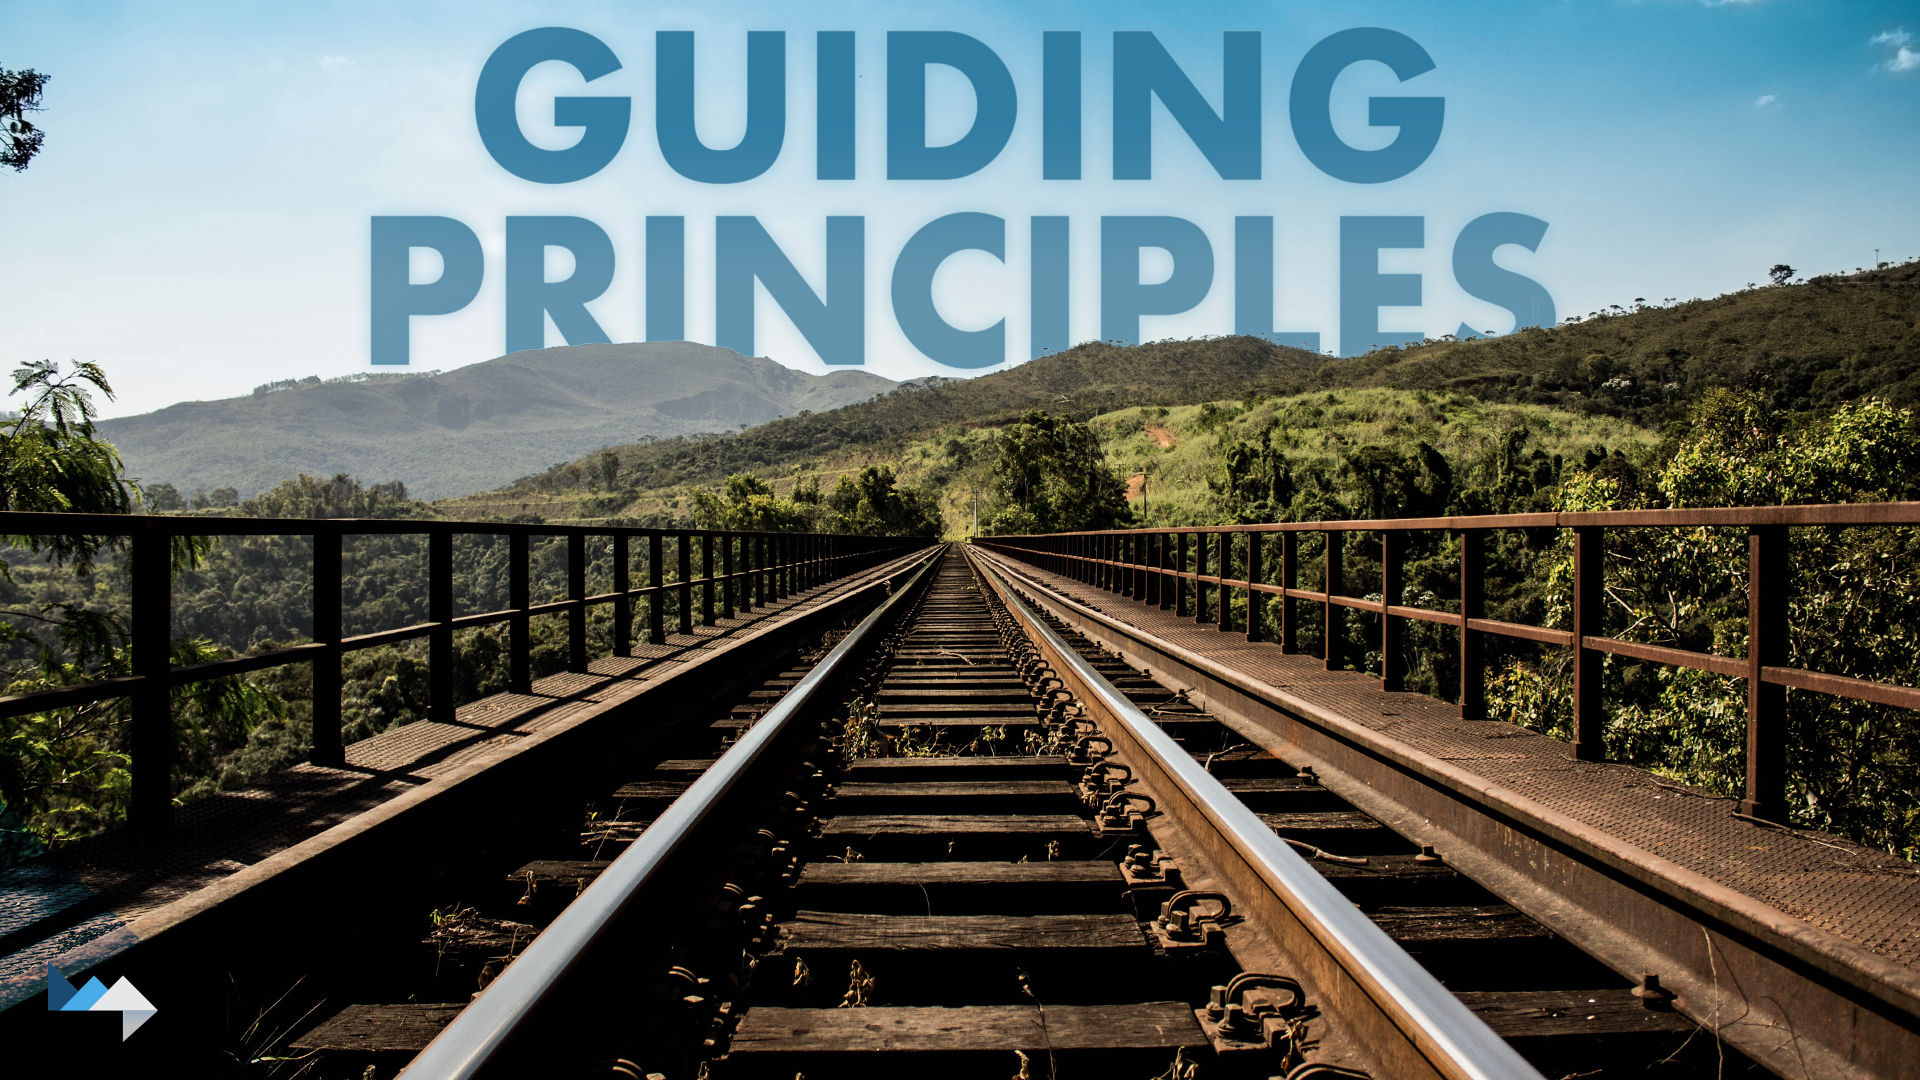 Guiding Principles: Laying the Tracks for Your Business